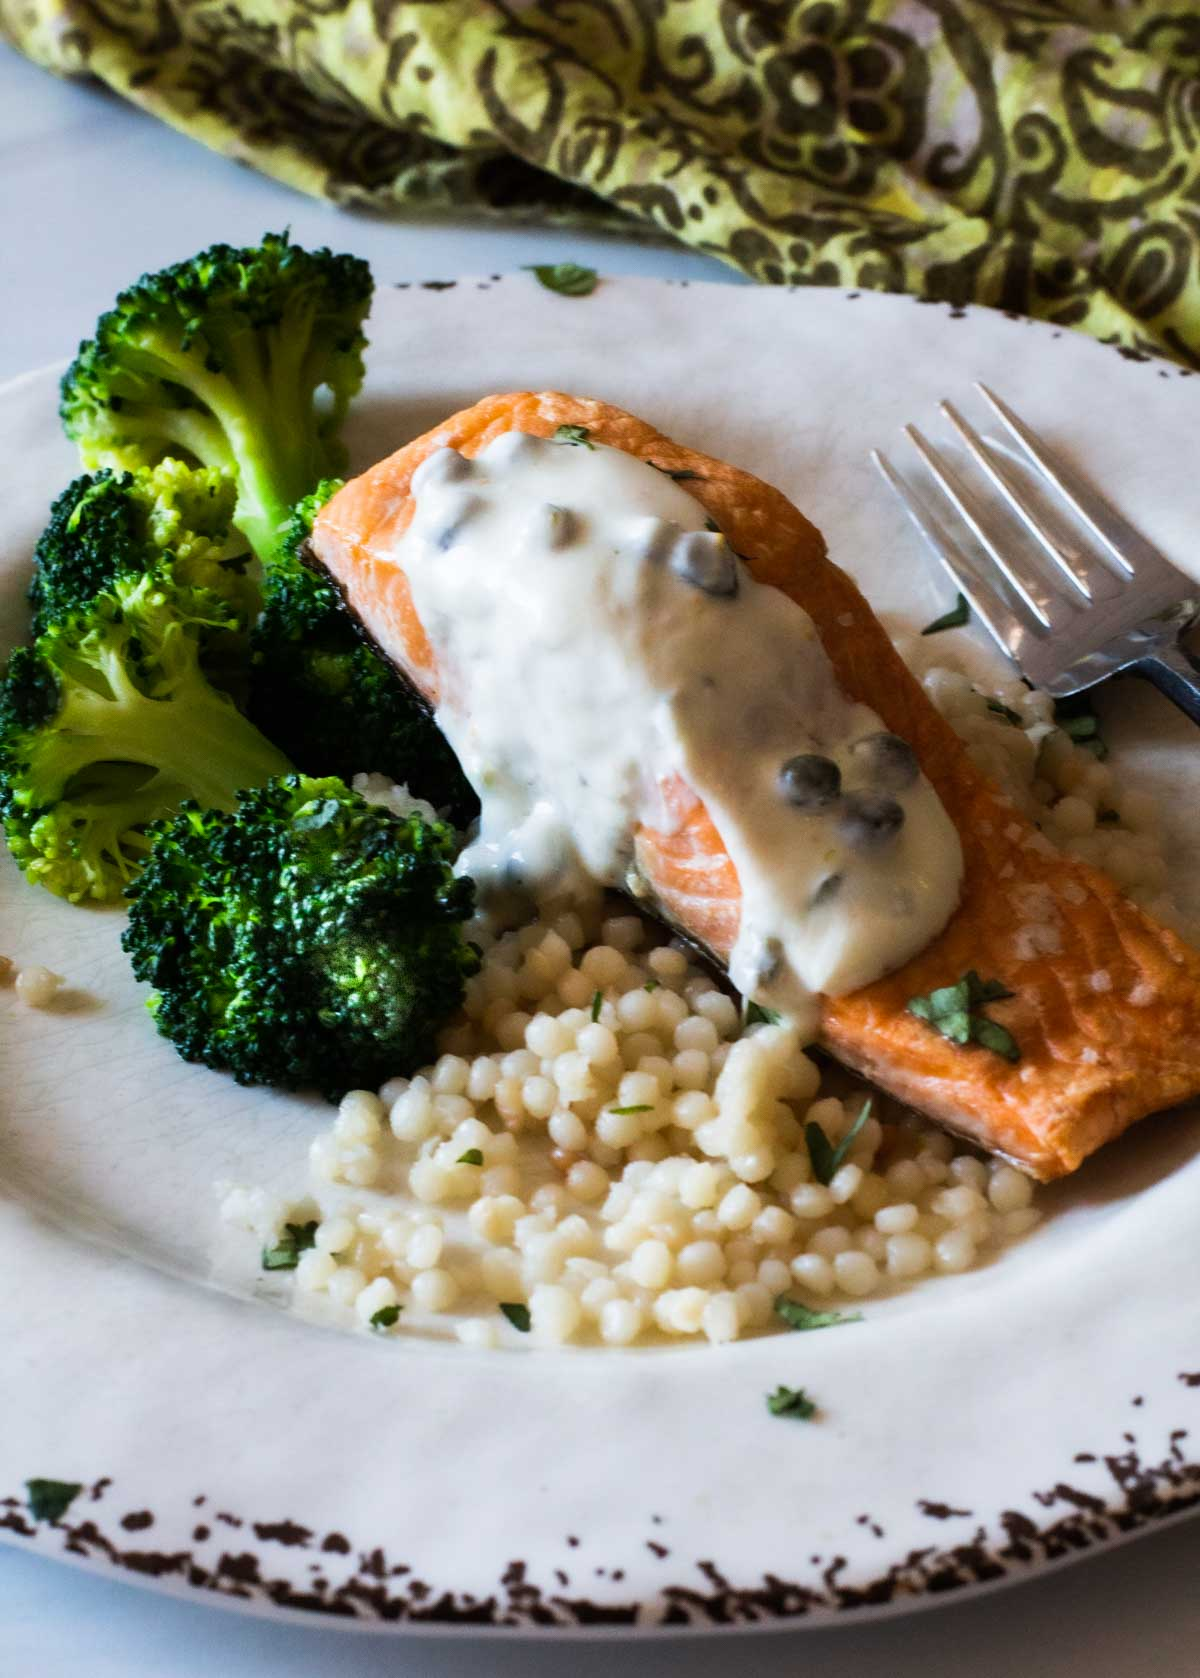 Salmon with yogurt sauce on a rustic plate served with broccoli and pearl couscous